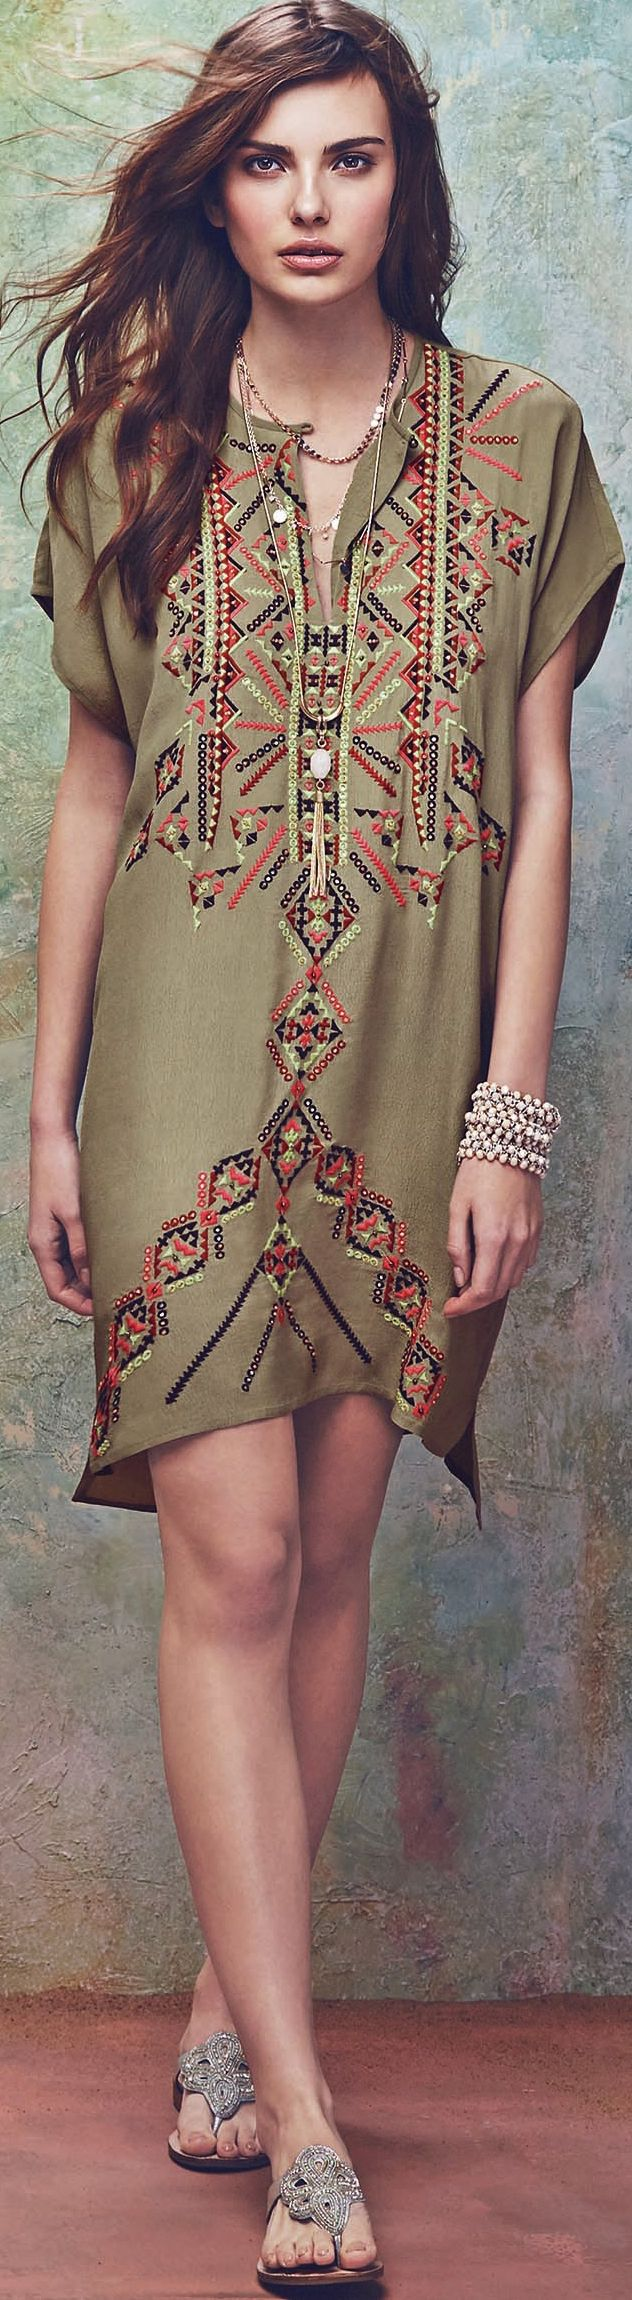 best images about bordados on pinterest day dresses stitching